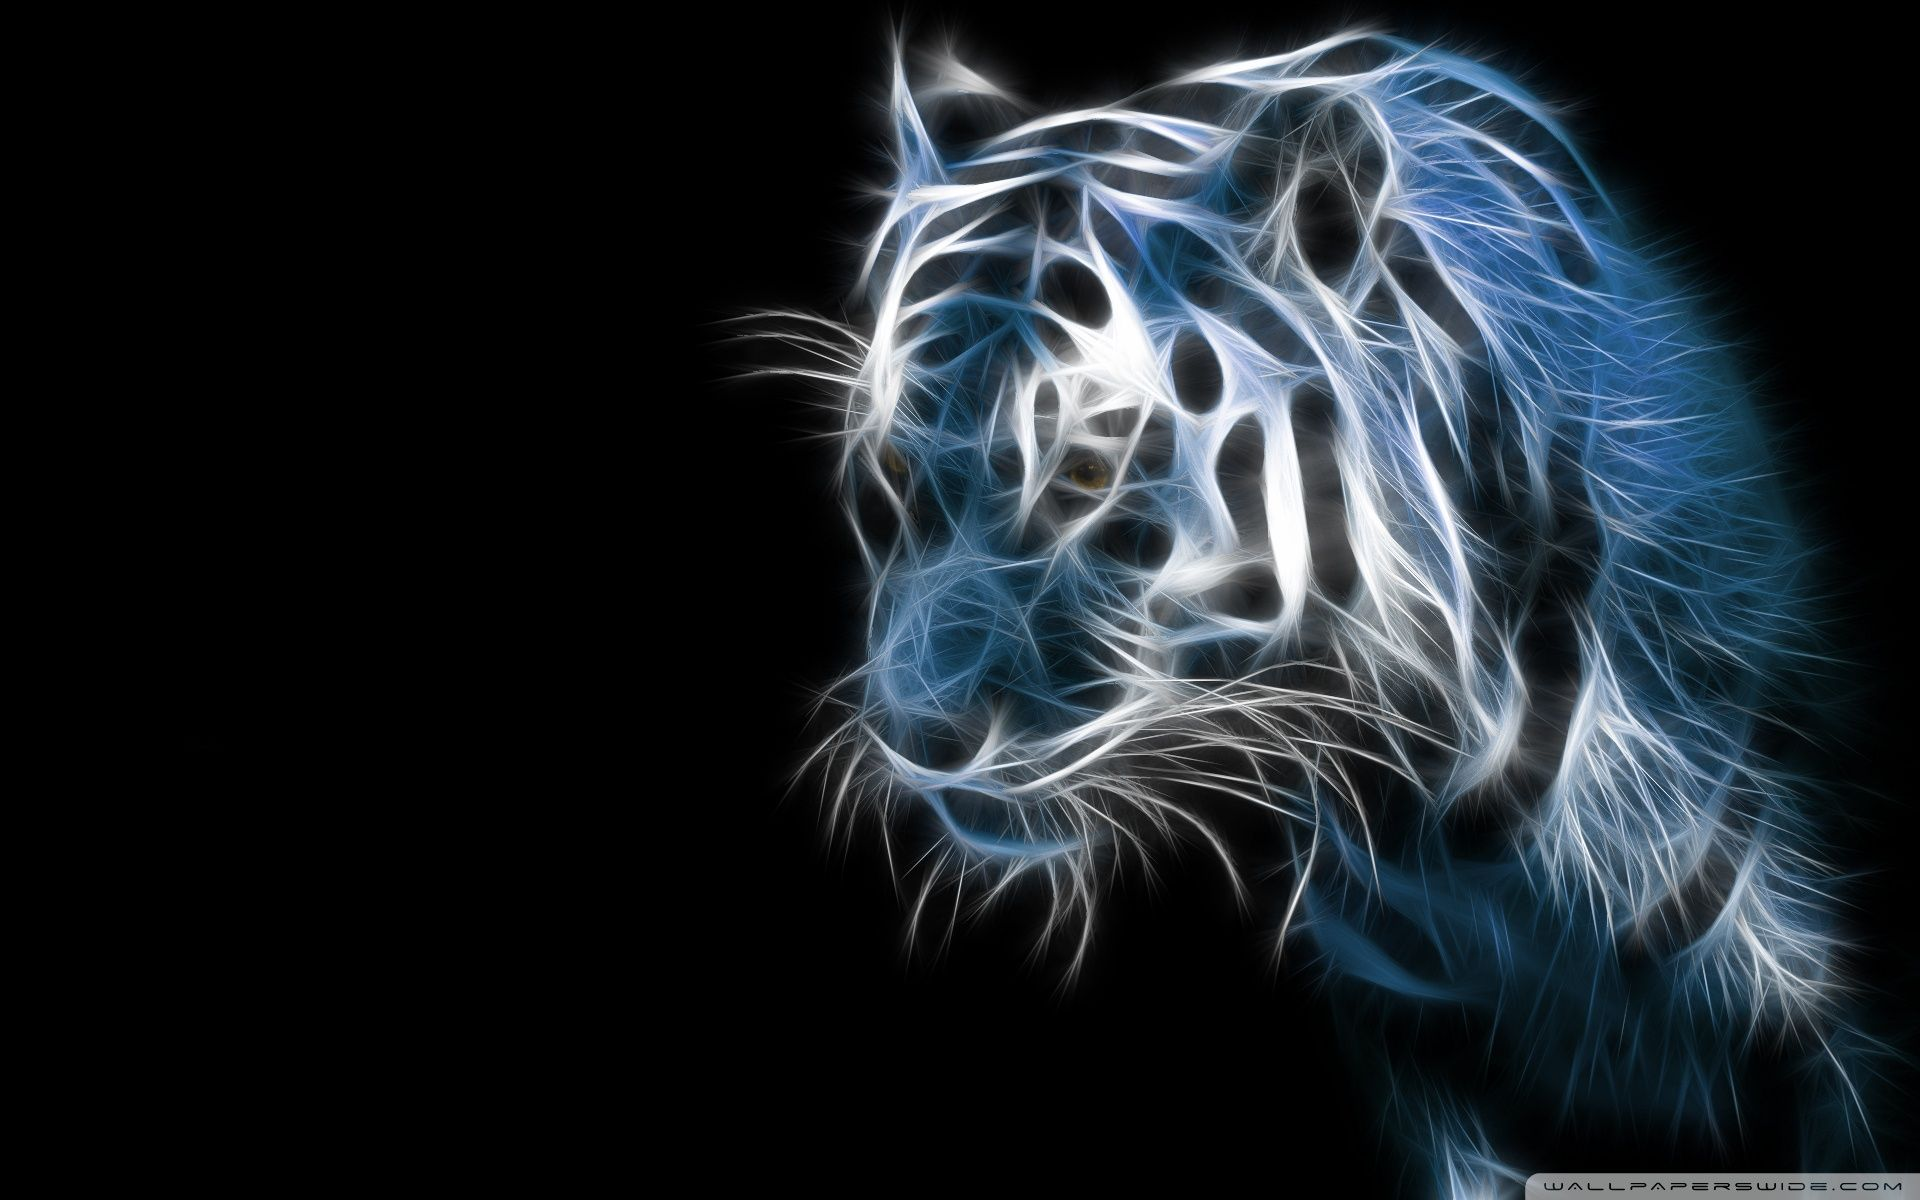 Abstract Tiger Wallpapers   Top Abstract Tiger Backgrounds 1920x1200